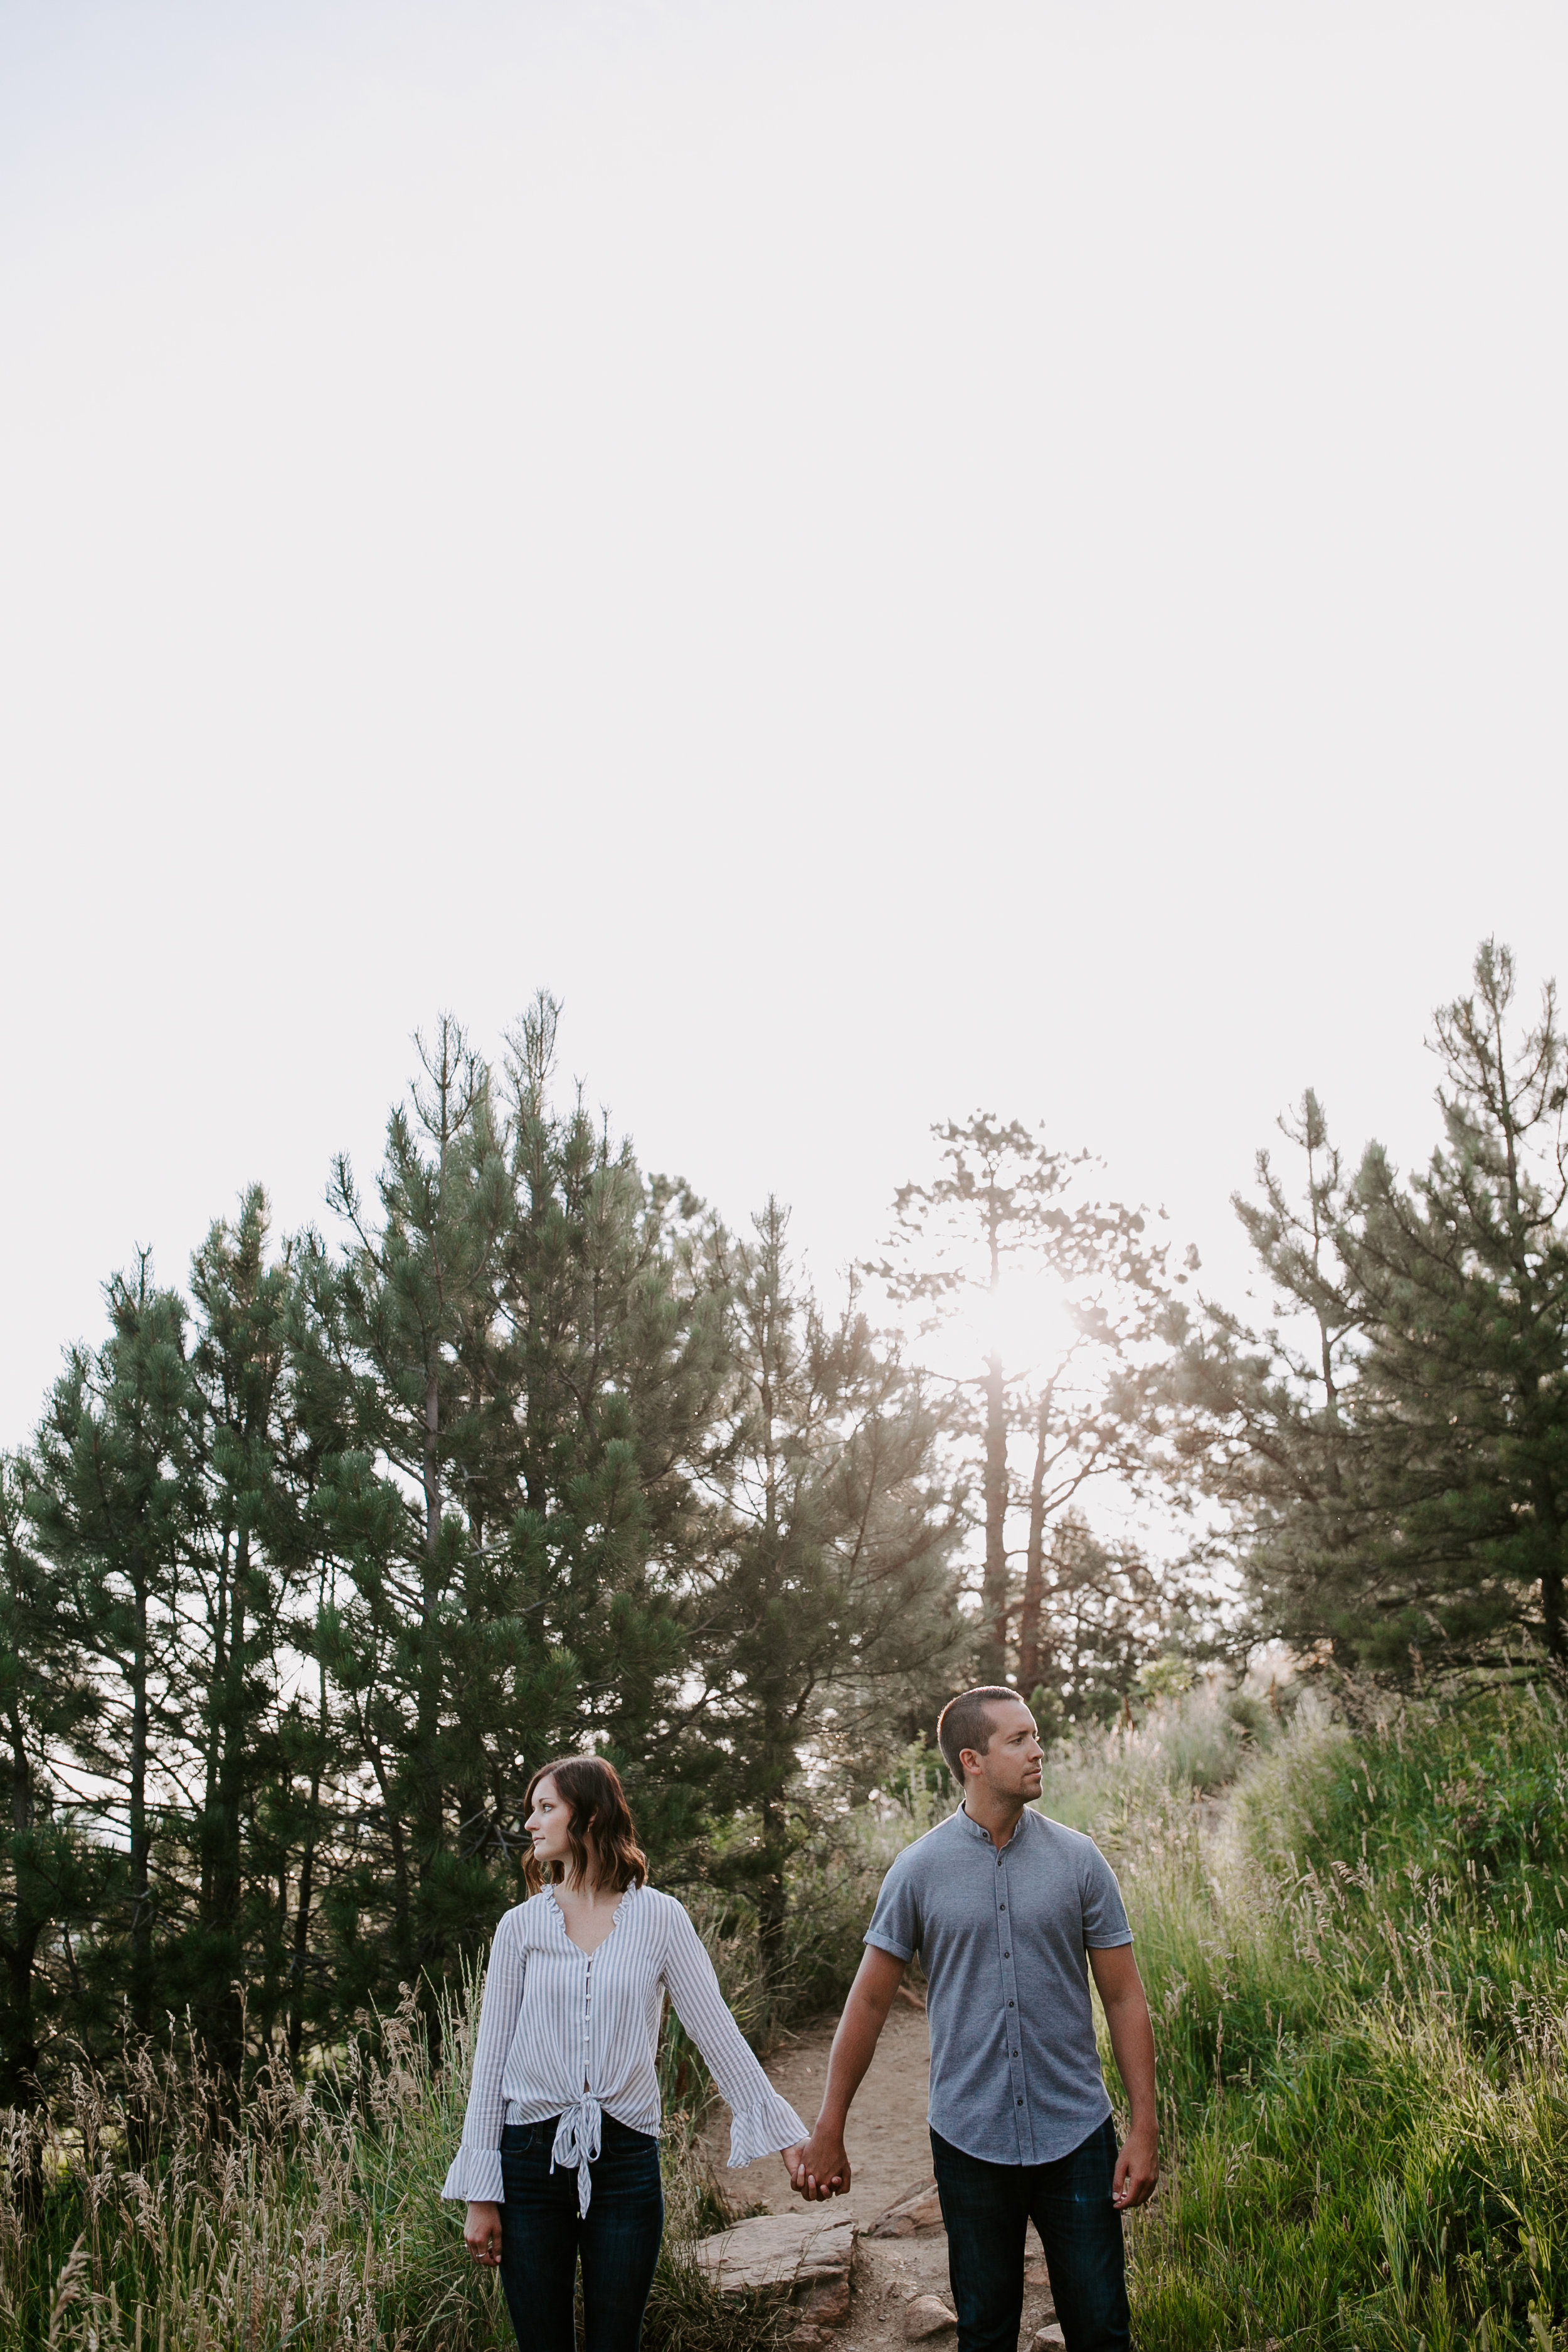 gracetphotography-denver-colorado-adventure-session-elopement-wedding-photographer-43.jpg